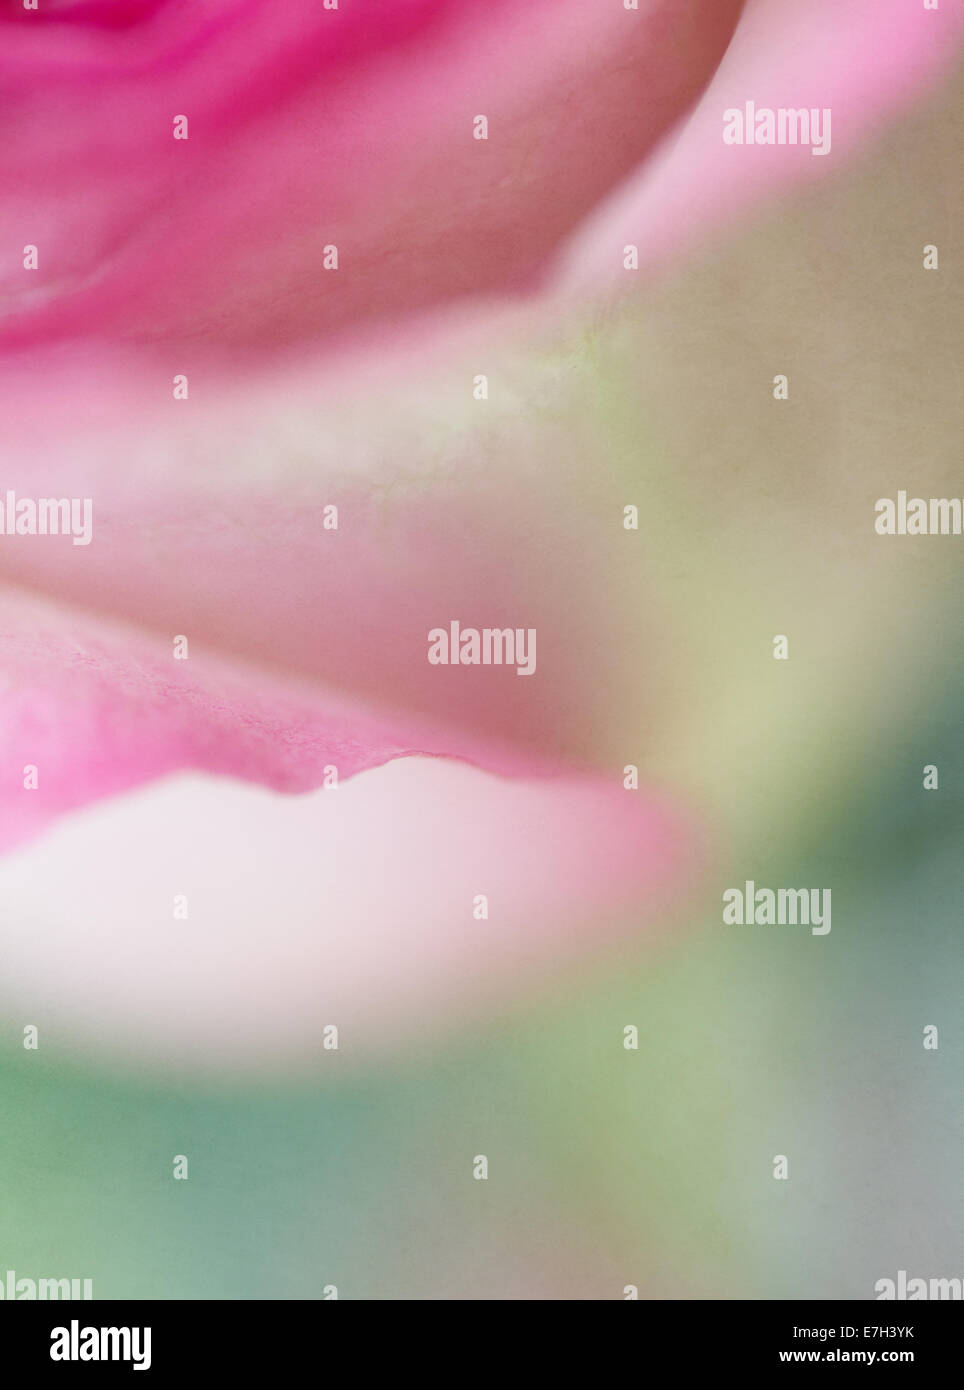 Pink Tulip with Texture Overlay - Stock Image